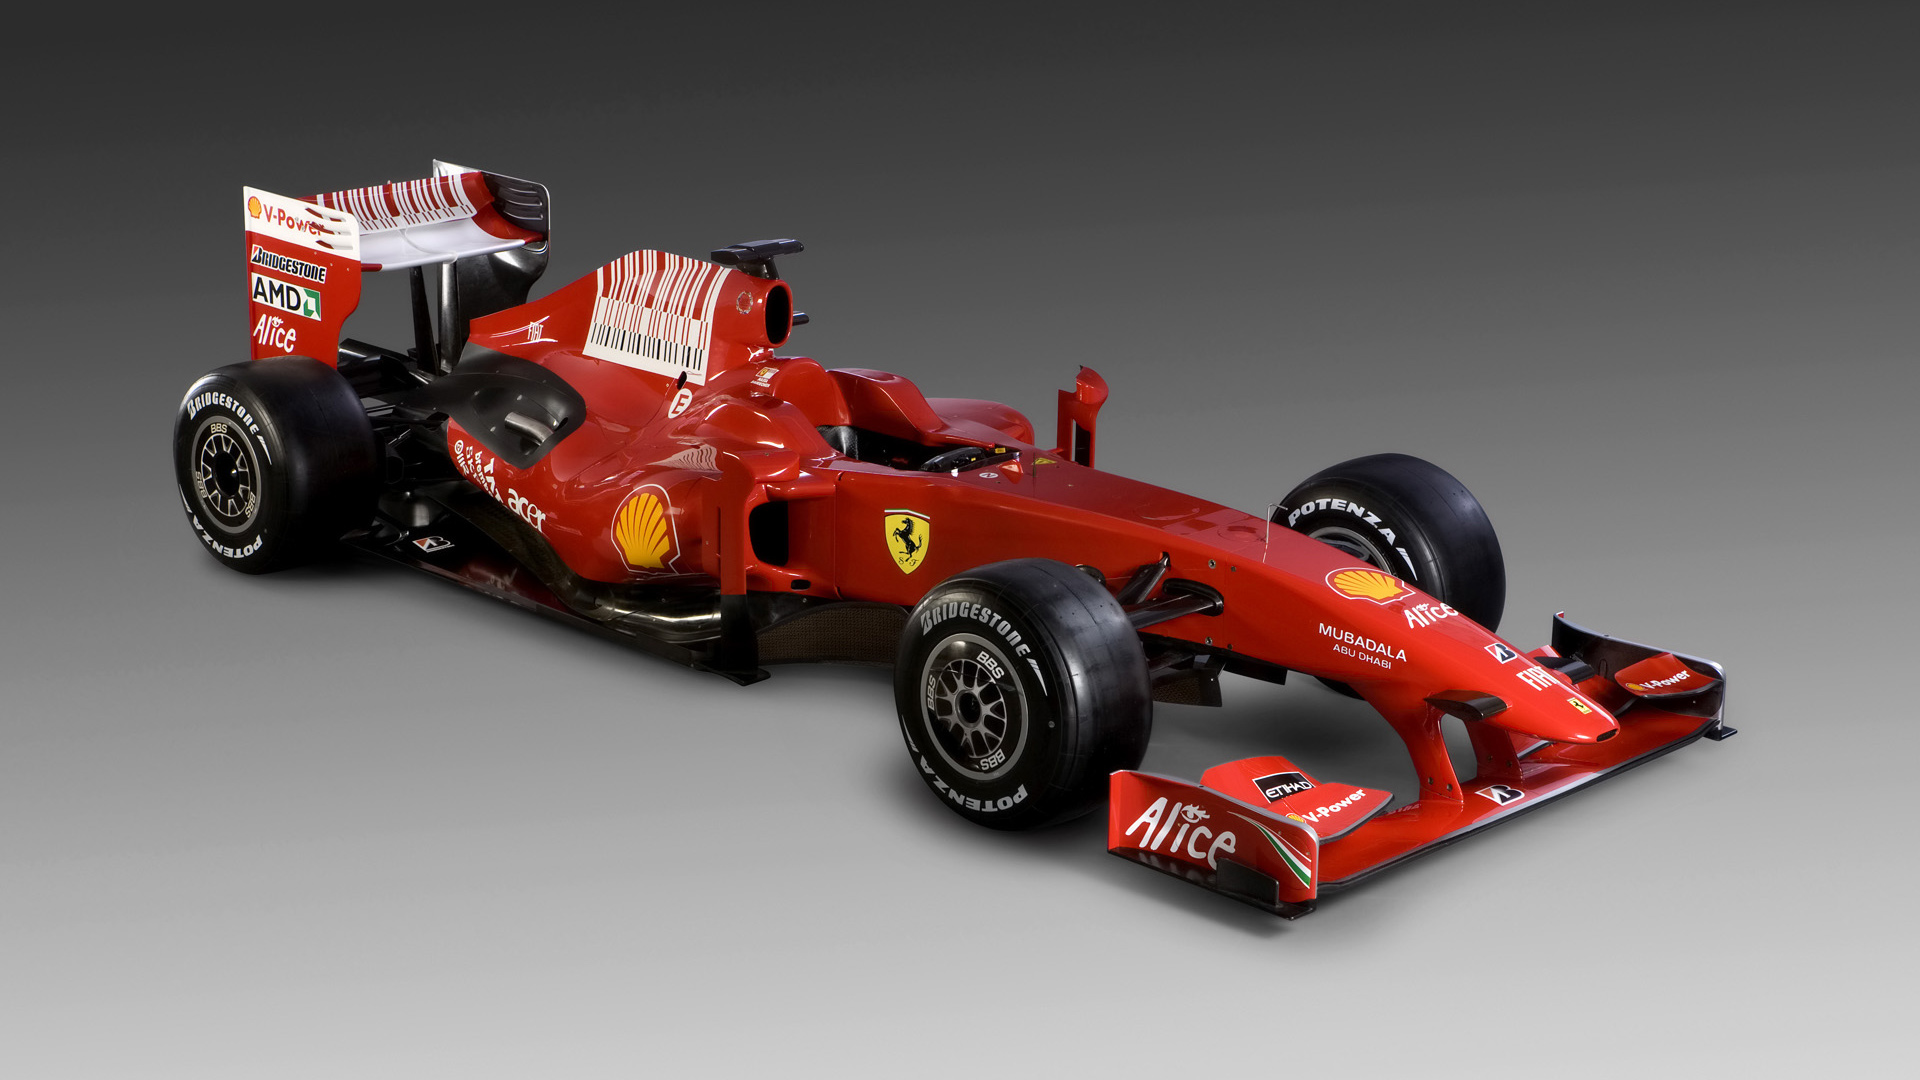 F1 Race Car Wallpaper 1920x1080